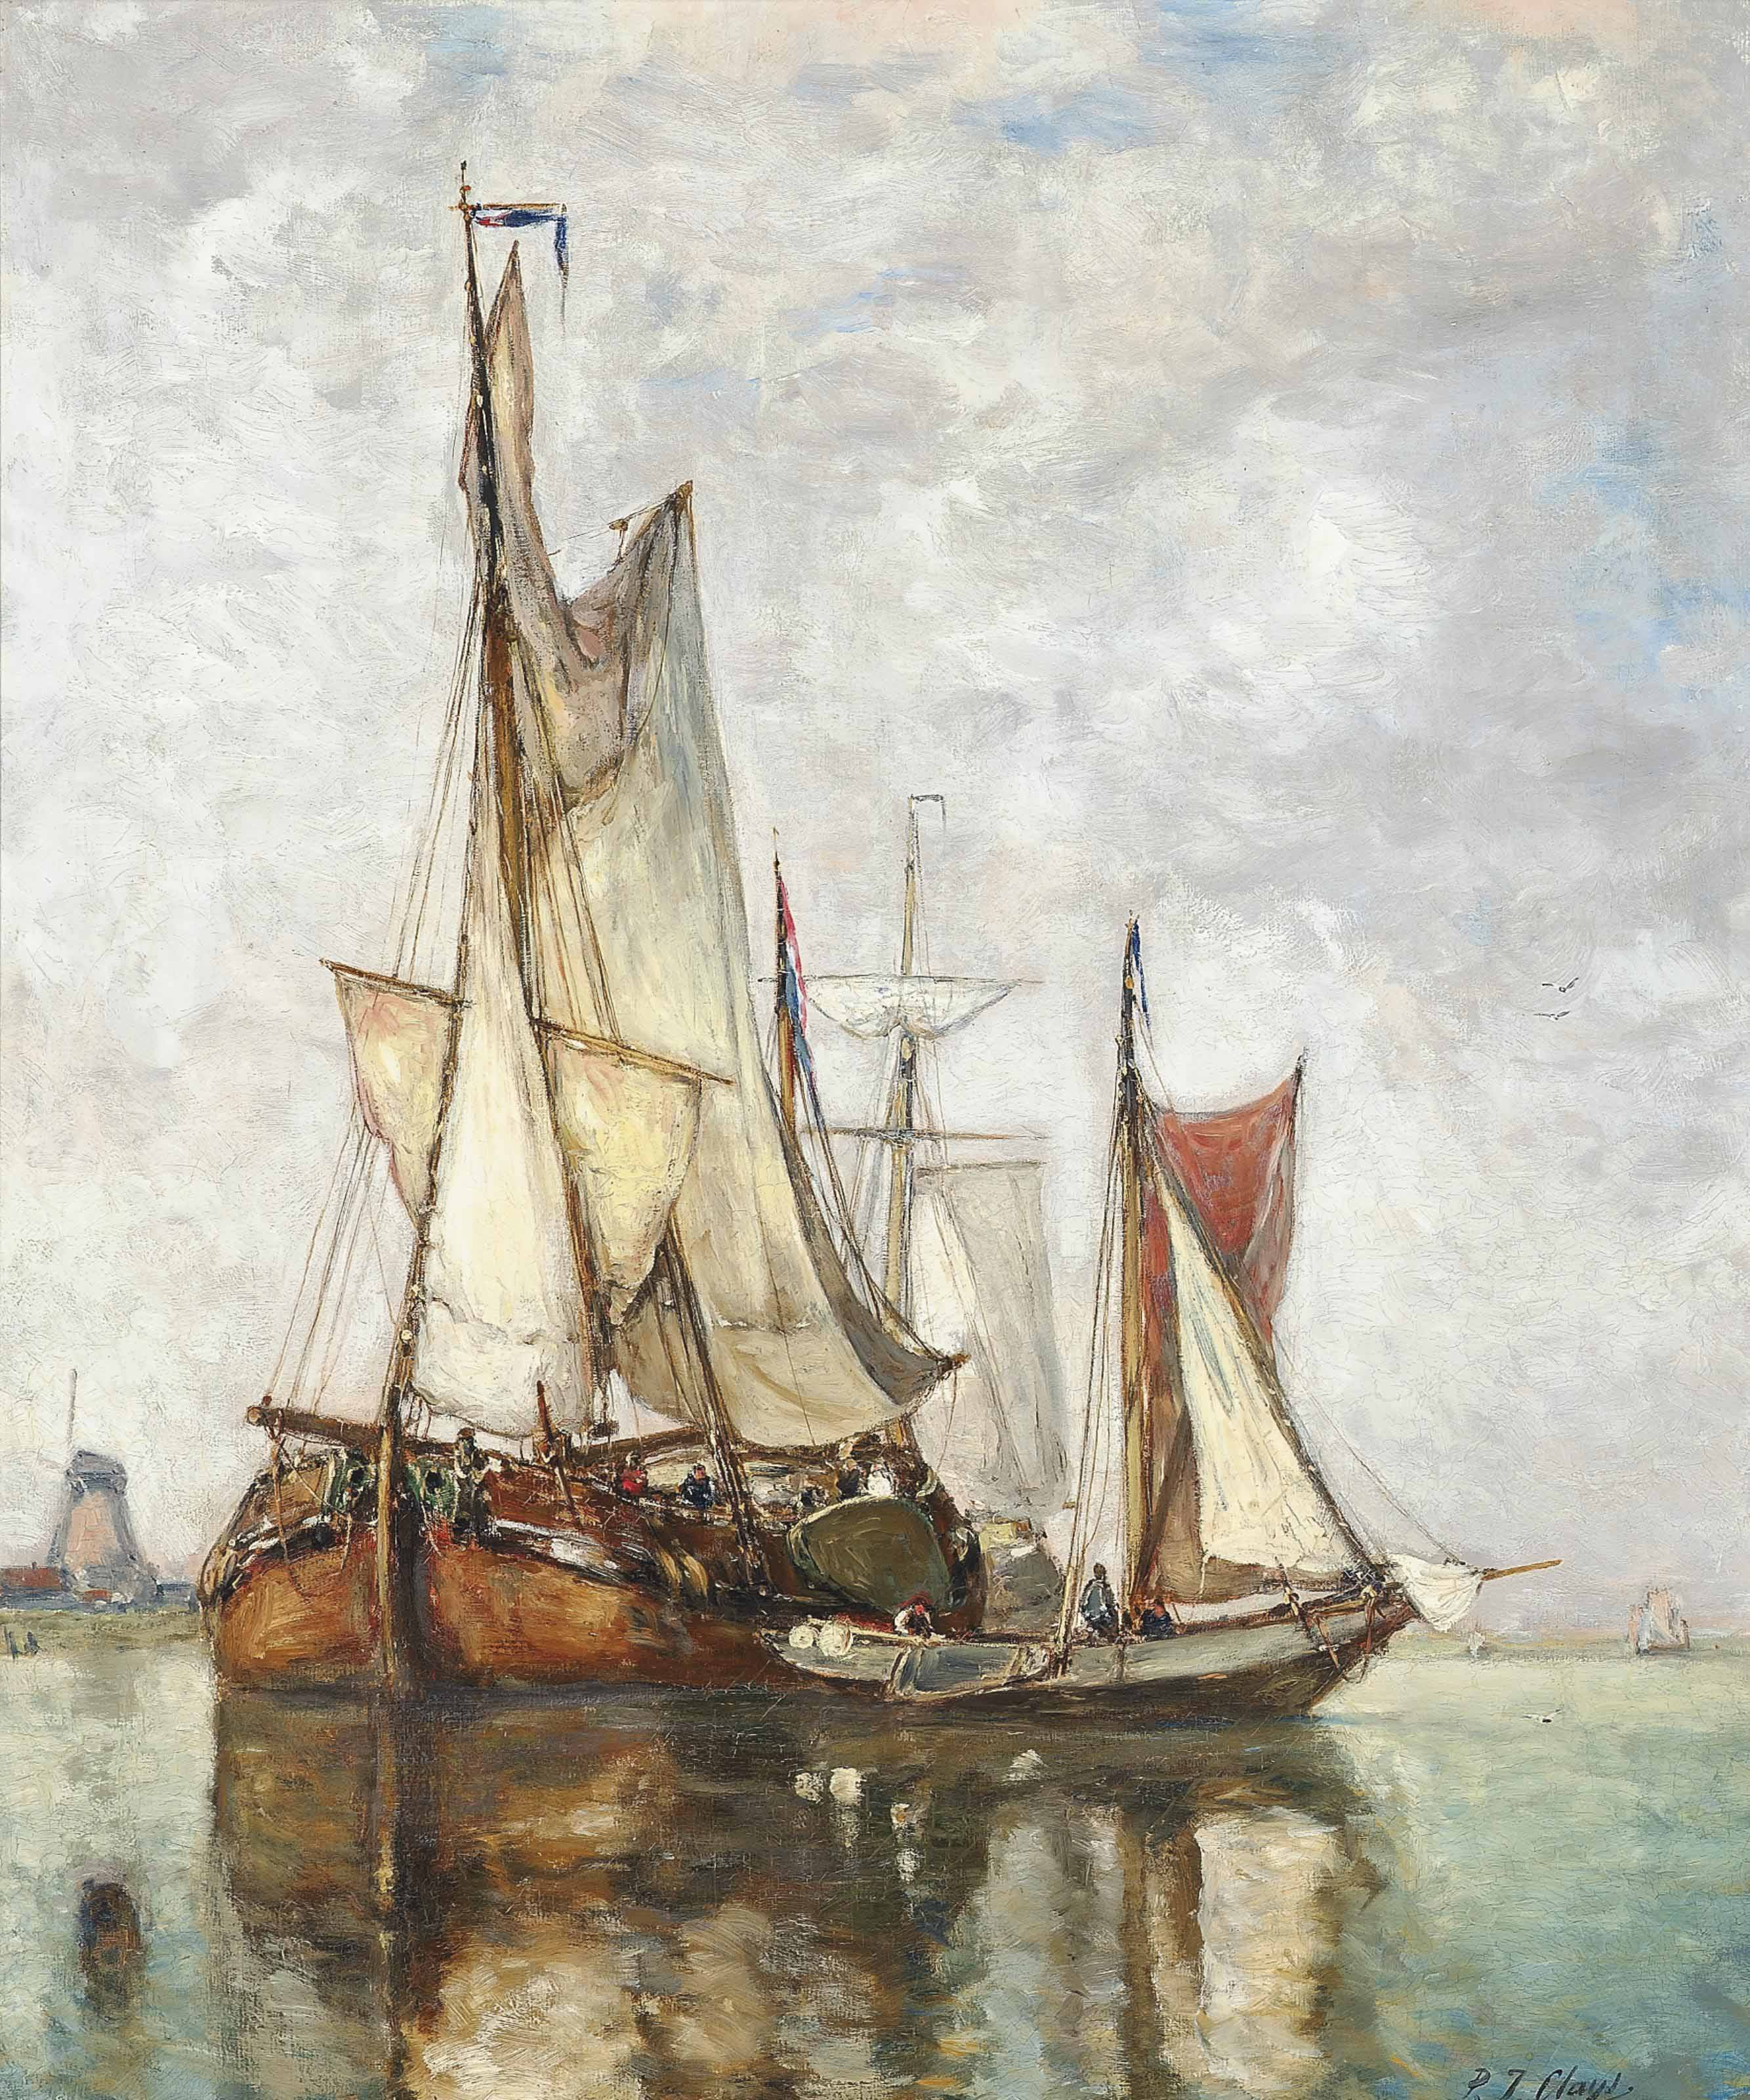 Barges moored before a windmill